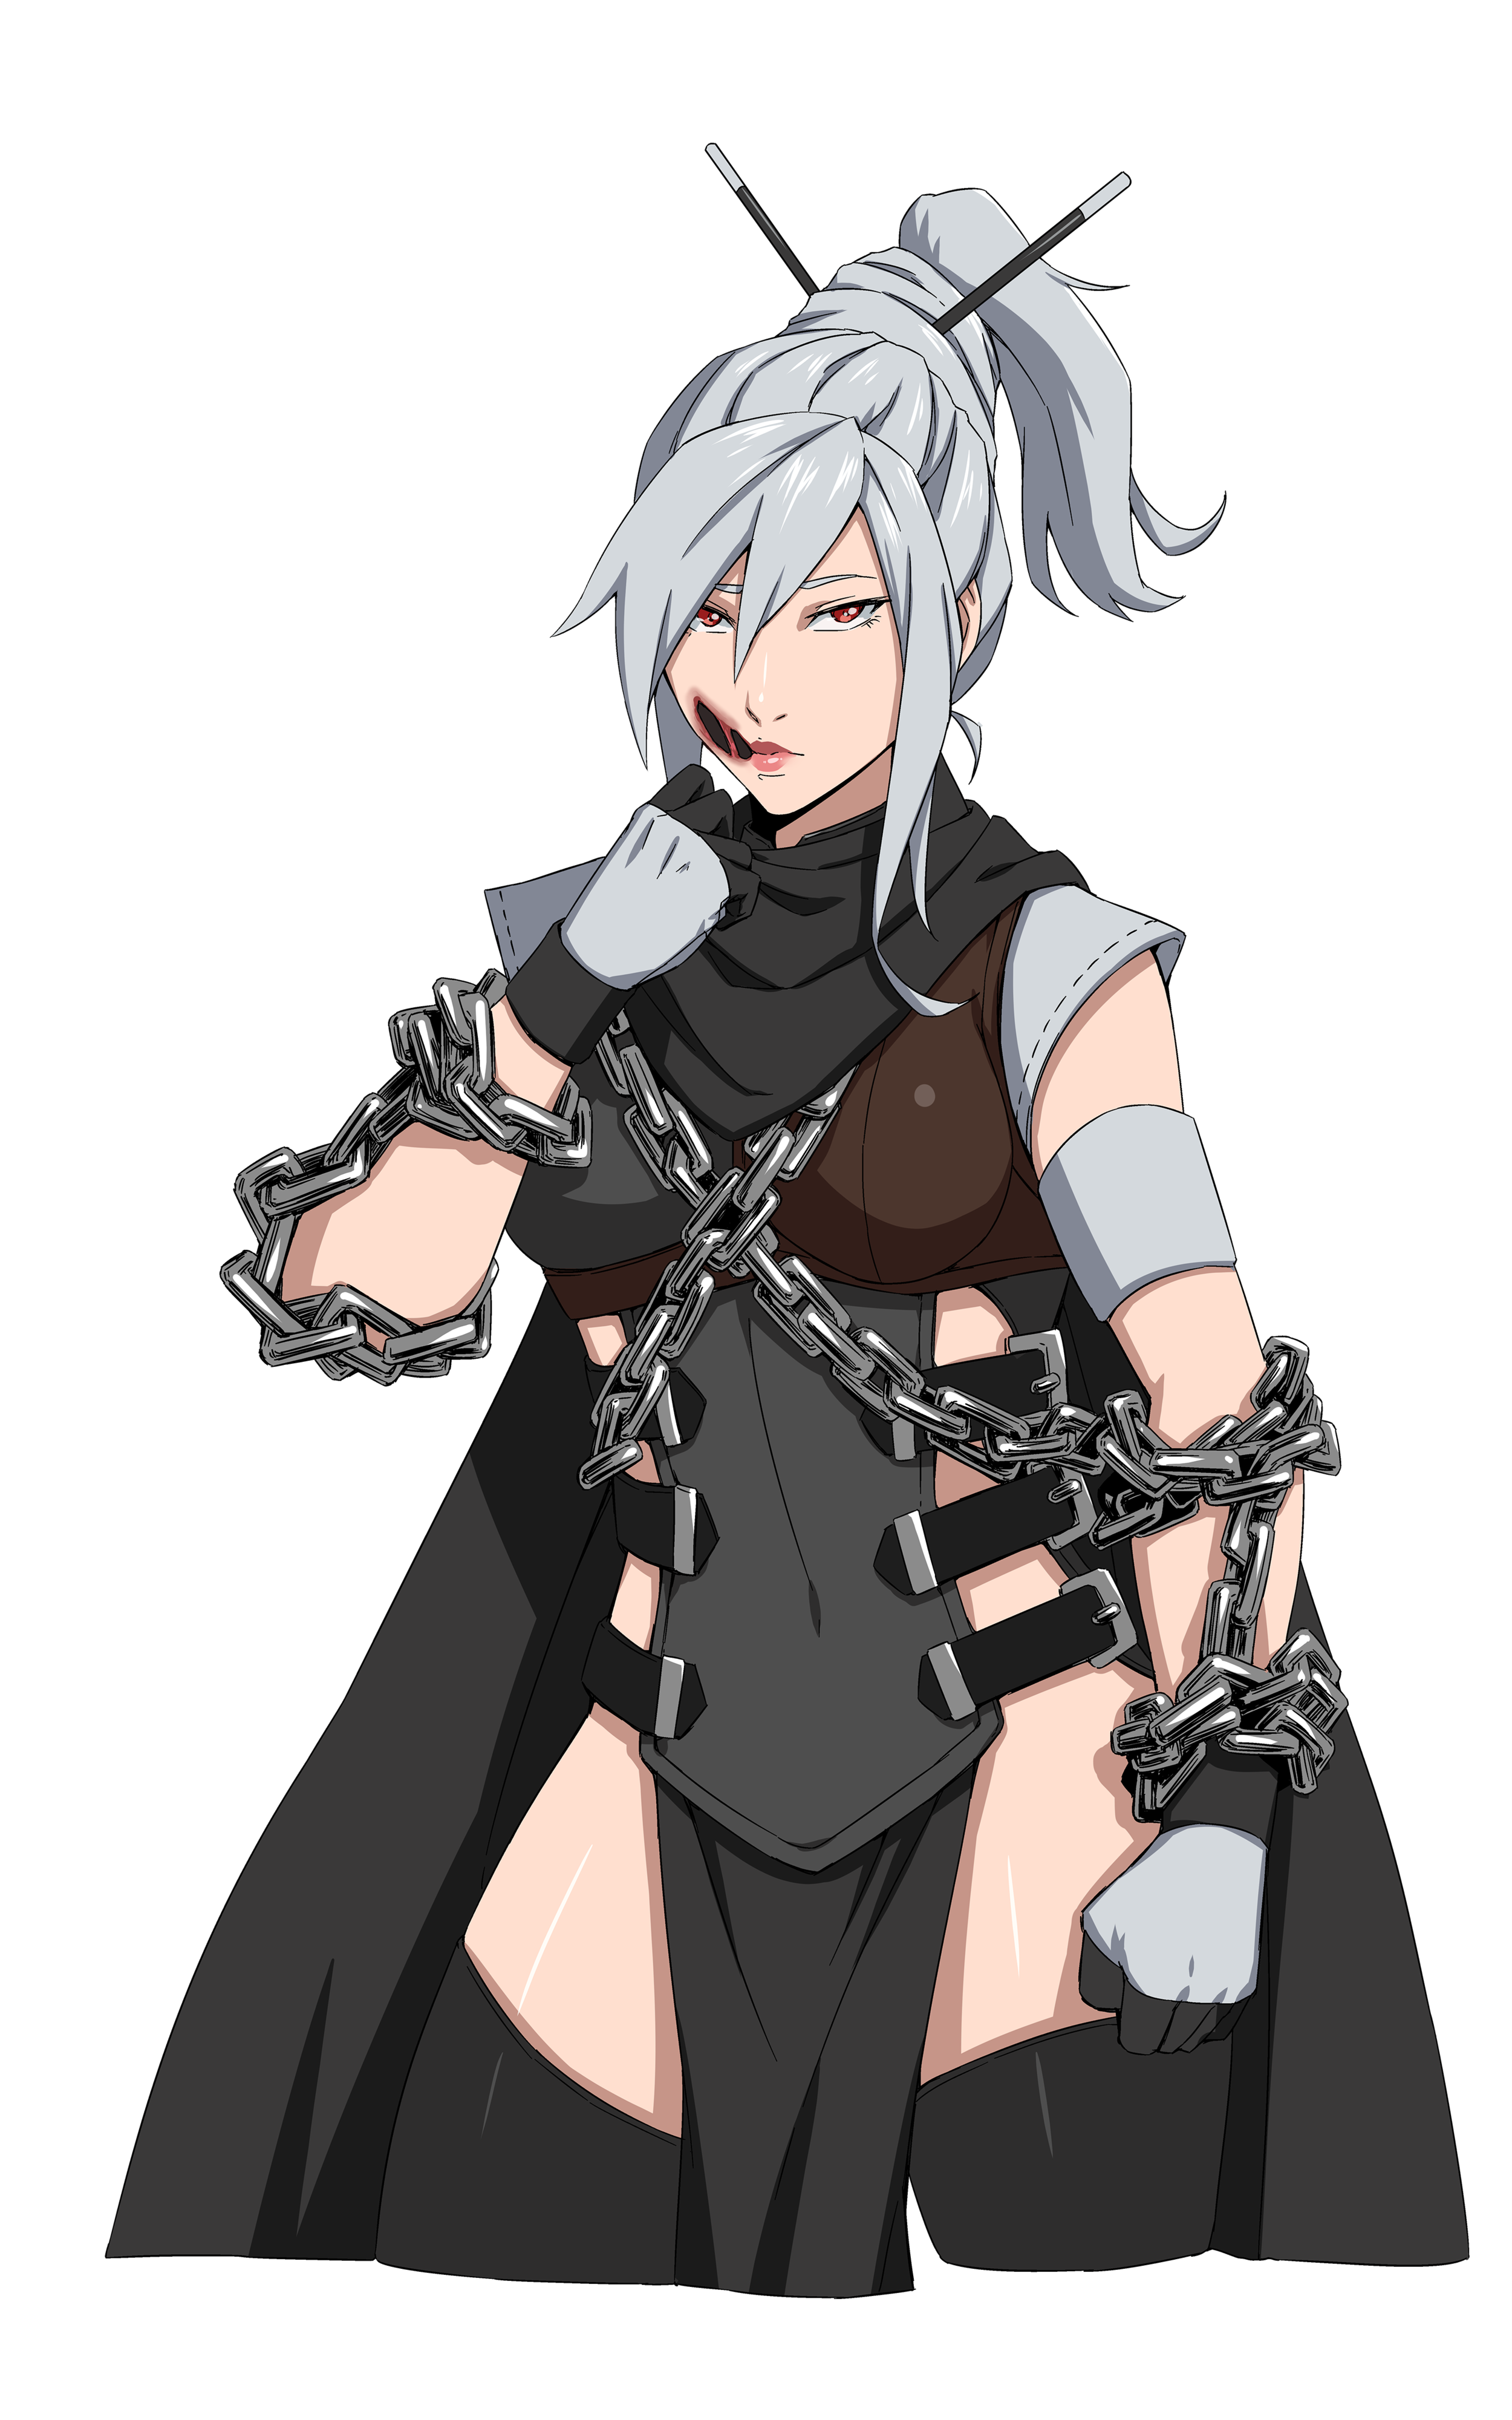 A loyal retainer for the Imperial family and one of the Empire's most respected warriors. She is seen by Aya as an aunt of sorts, someone always looking out for her that she can turn to.